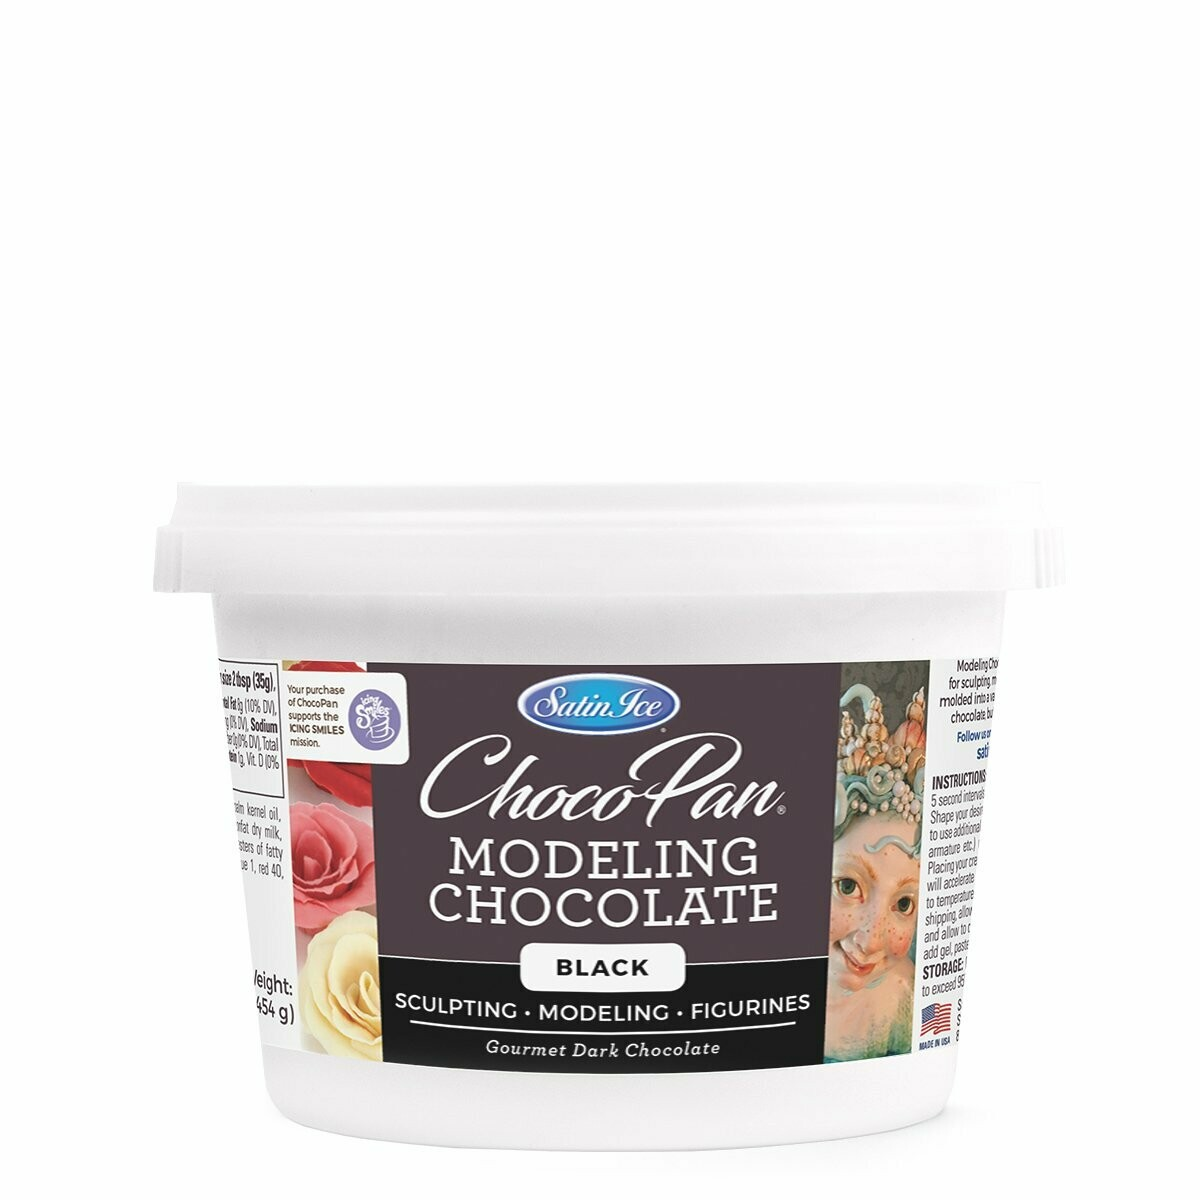 ChocoPan Modeling Chocolate by Satin Ice (Multiple Colors)